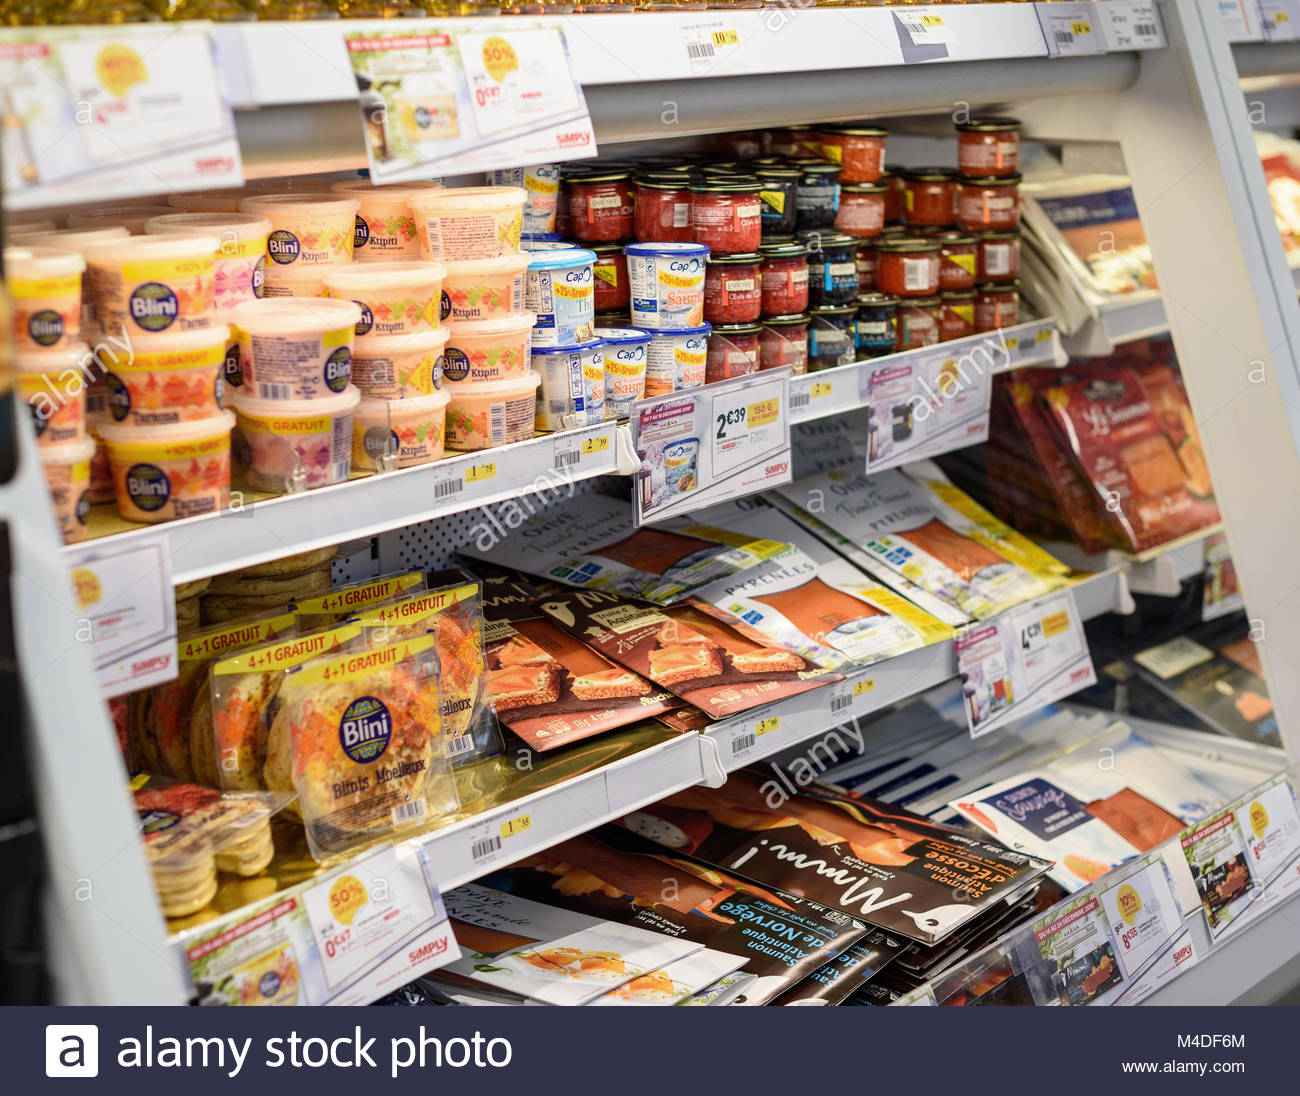 French Supermarkets Stock Photos & French Supermarkets Stock